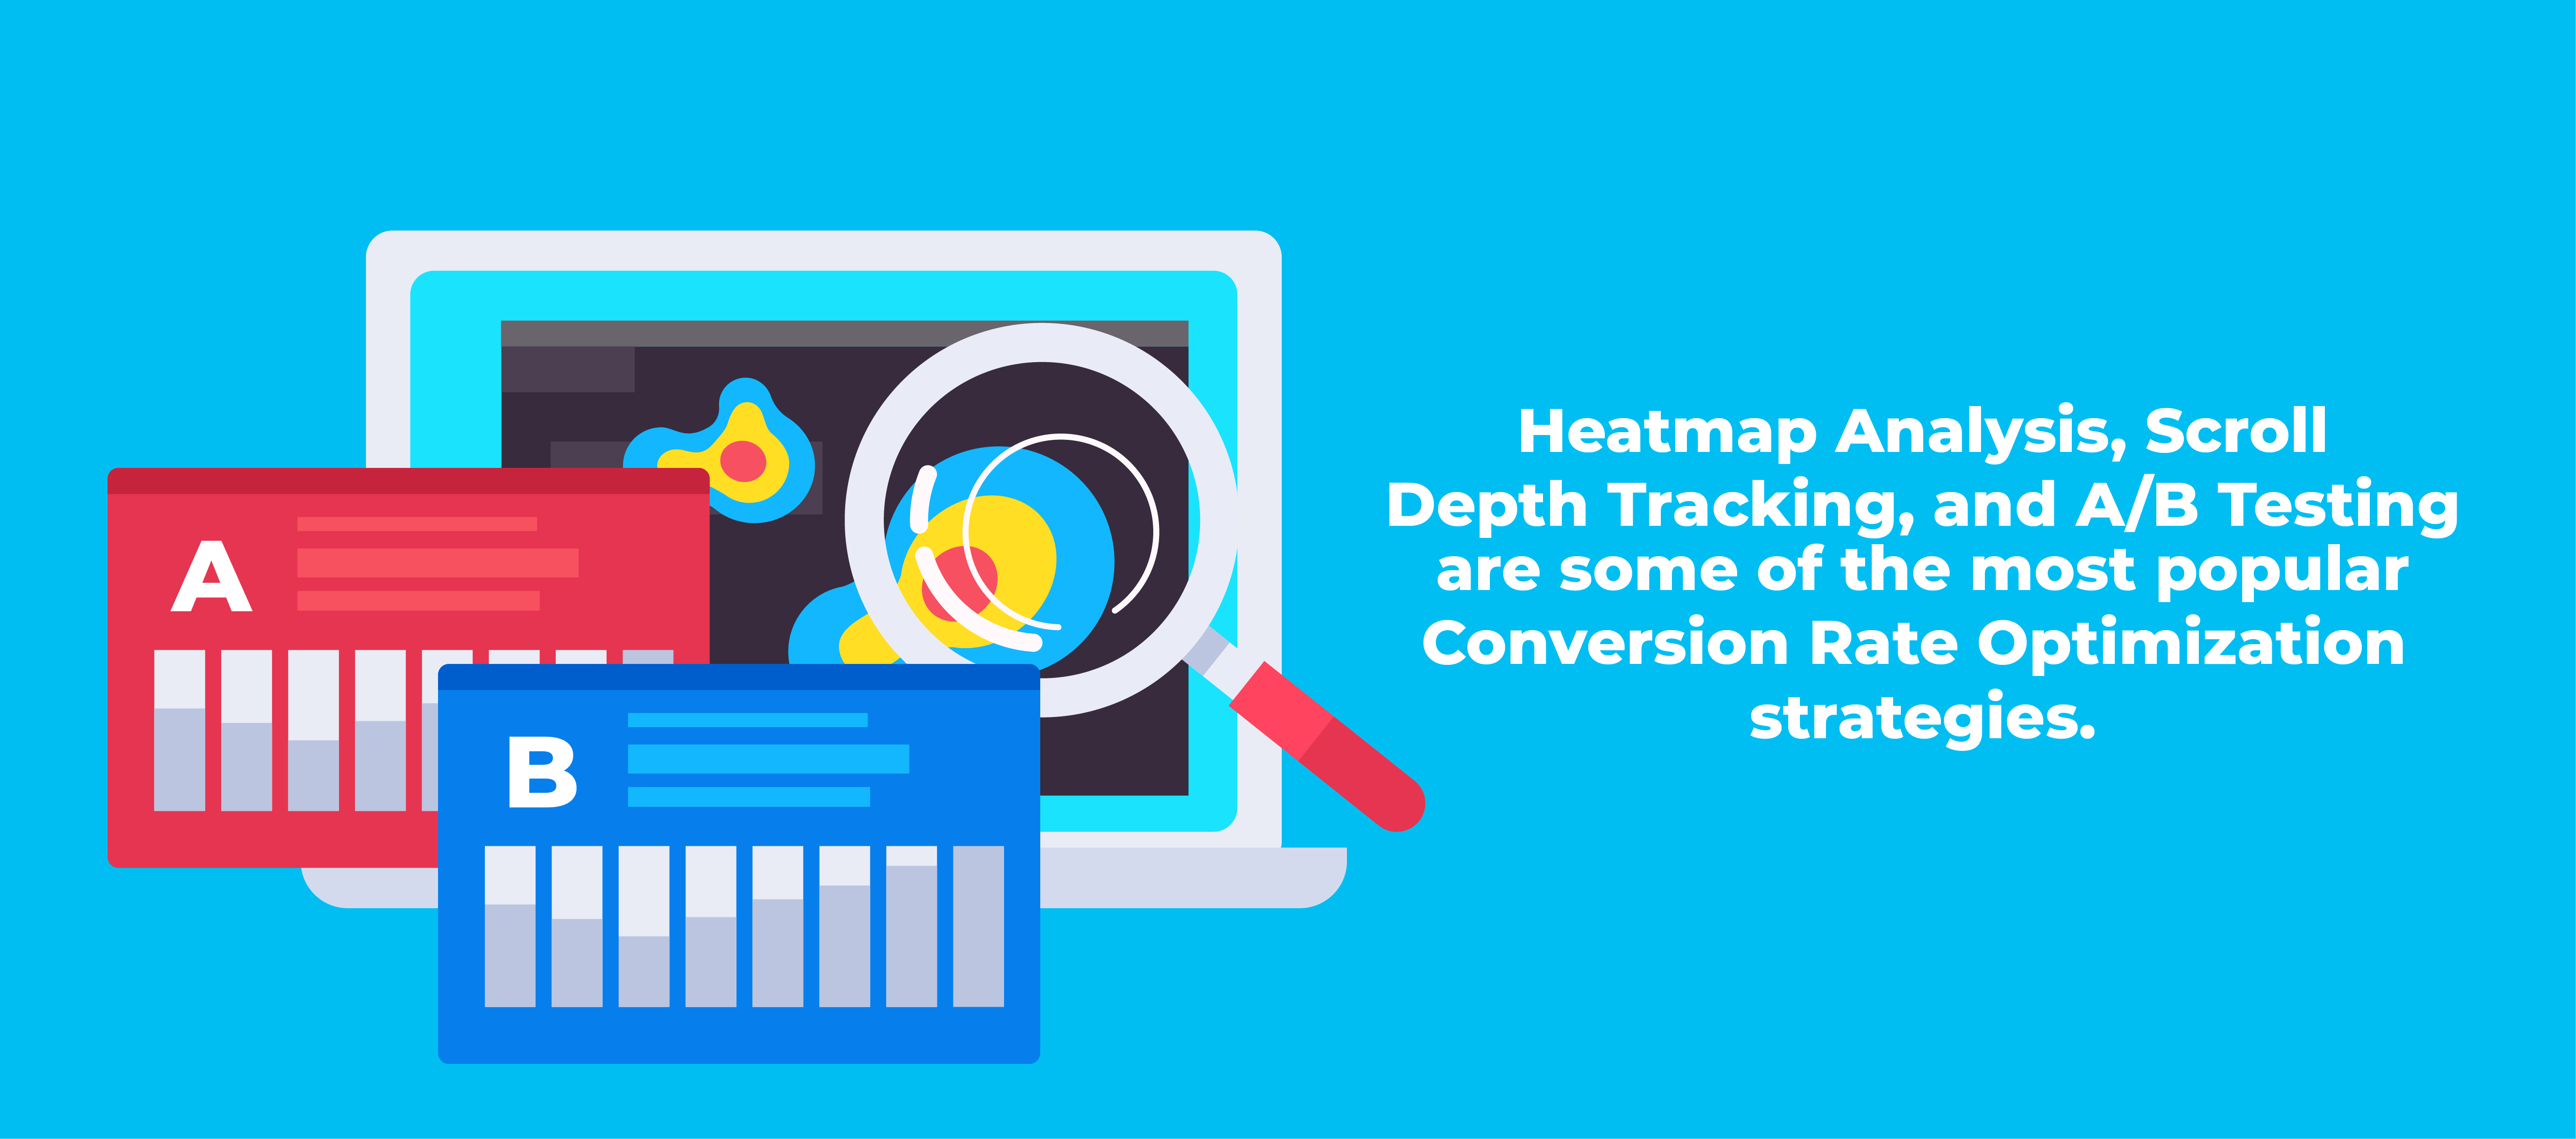 Heatmap Analysis, Scroll Depth Tracking, and A/B Testing are some of the most popular Conversion Rate Optimization strategies.